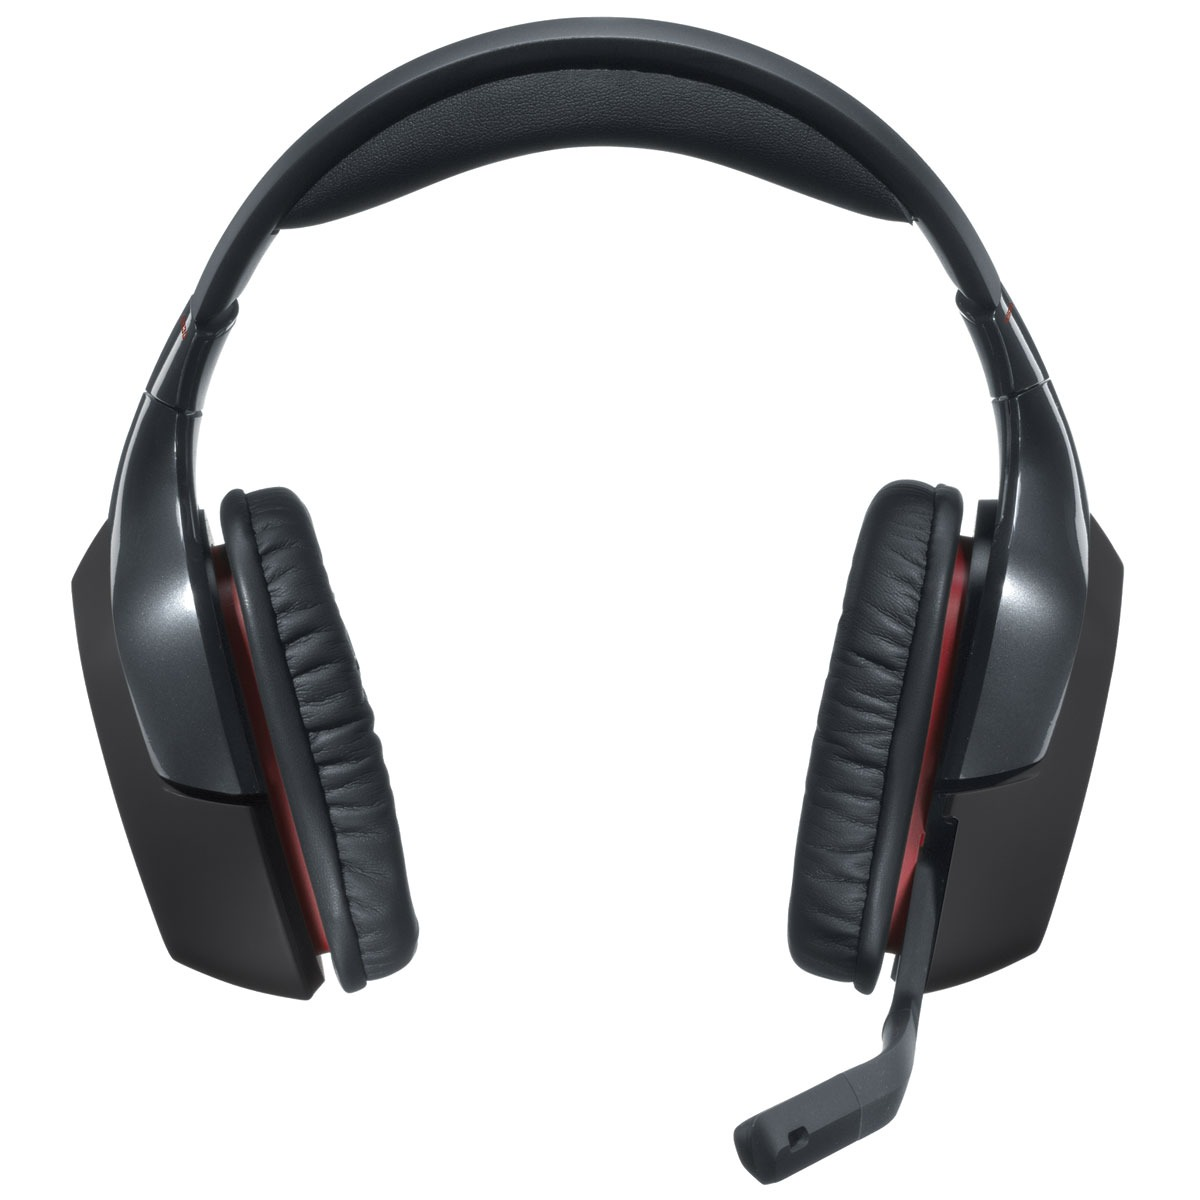 Logitech G930 Wireless Gaming Headset Micro Casque